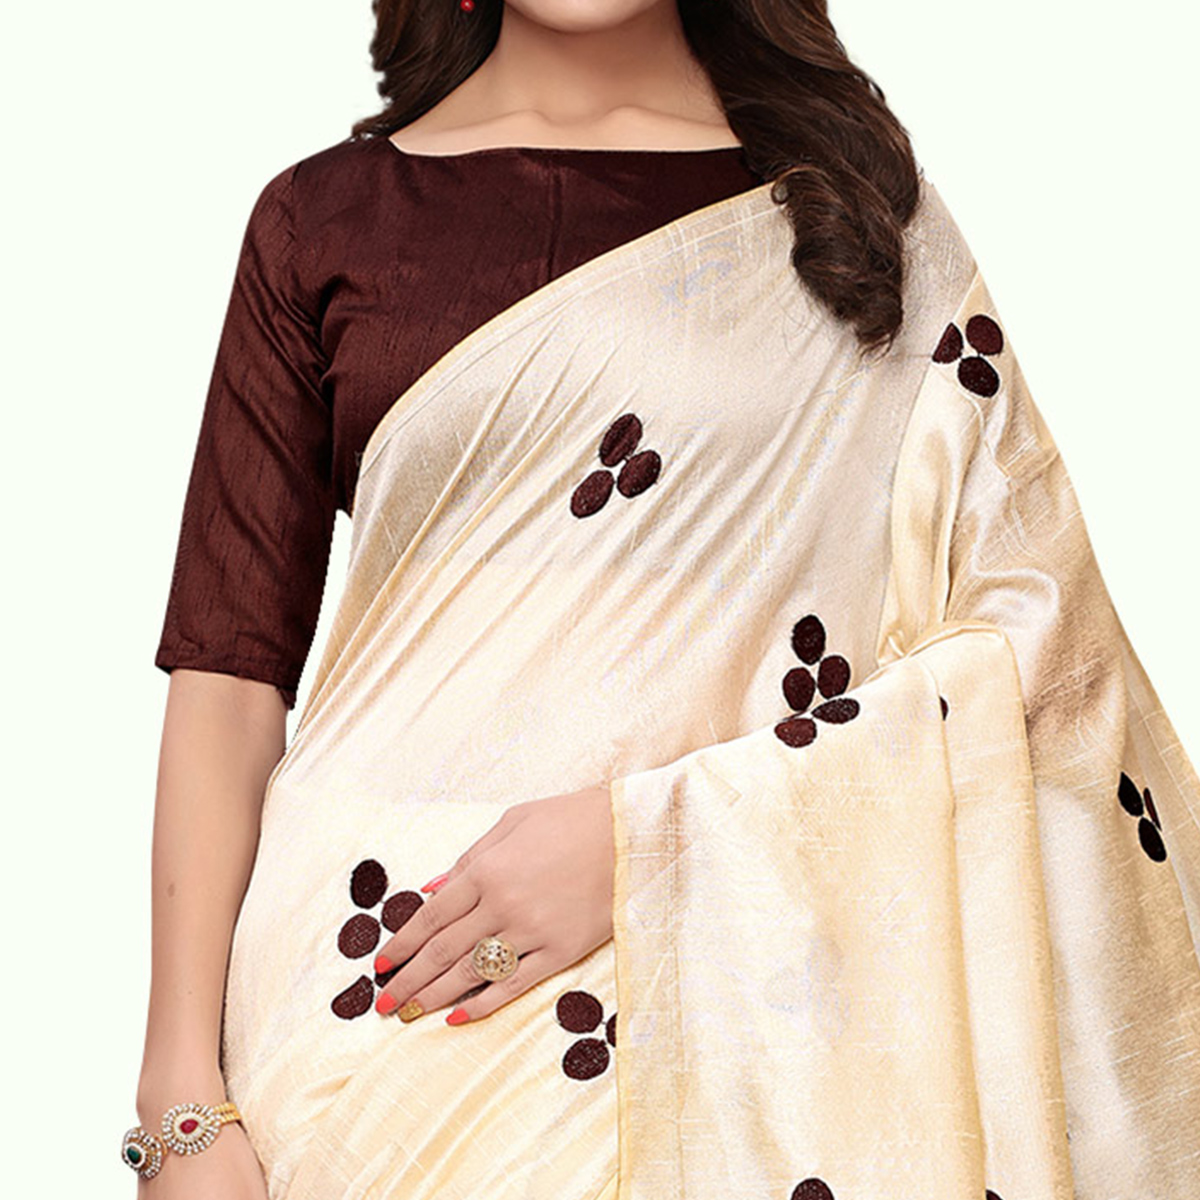 Blooming Cream - Brown Colored Party Wear Embroidered Bhagalpuri Silk Saree